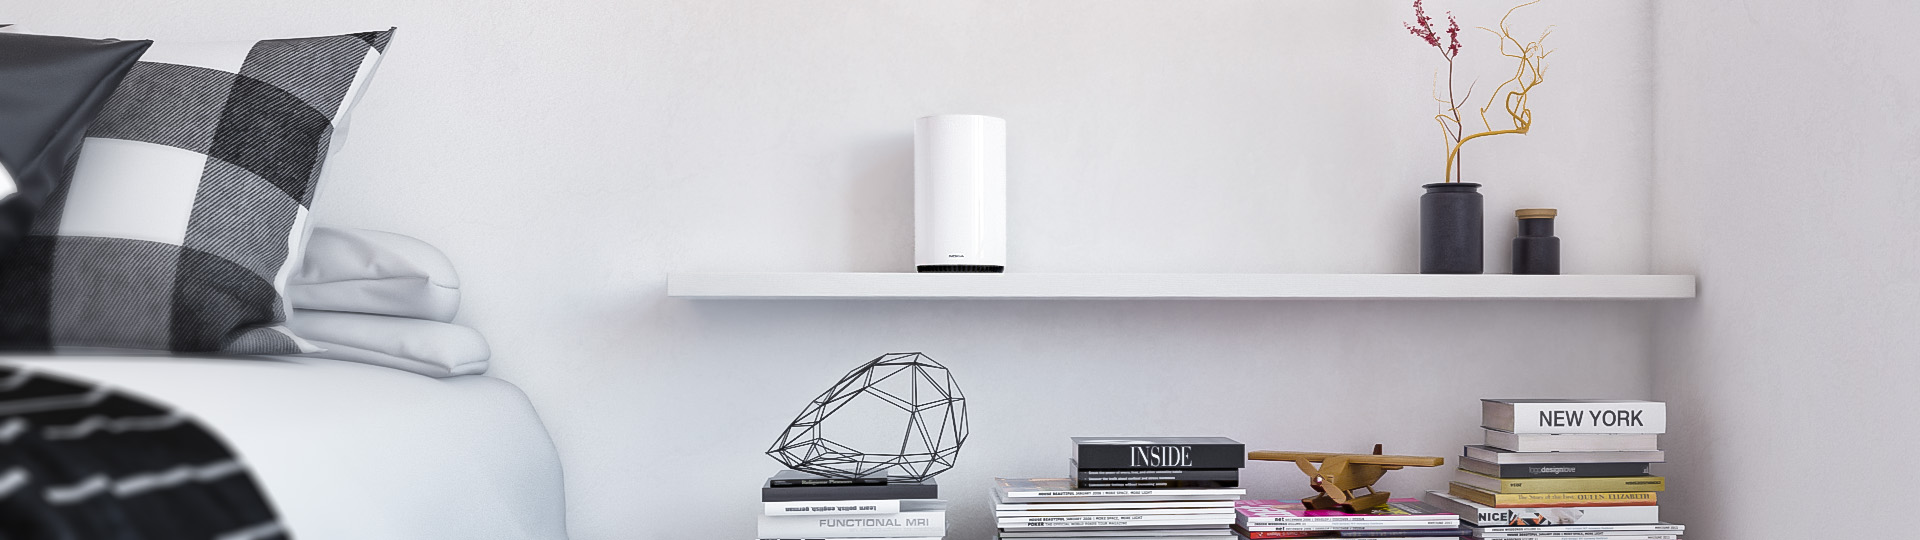 Nokia acquires Unium, a mesh WiFi startup that works with Google